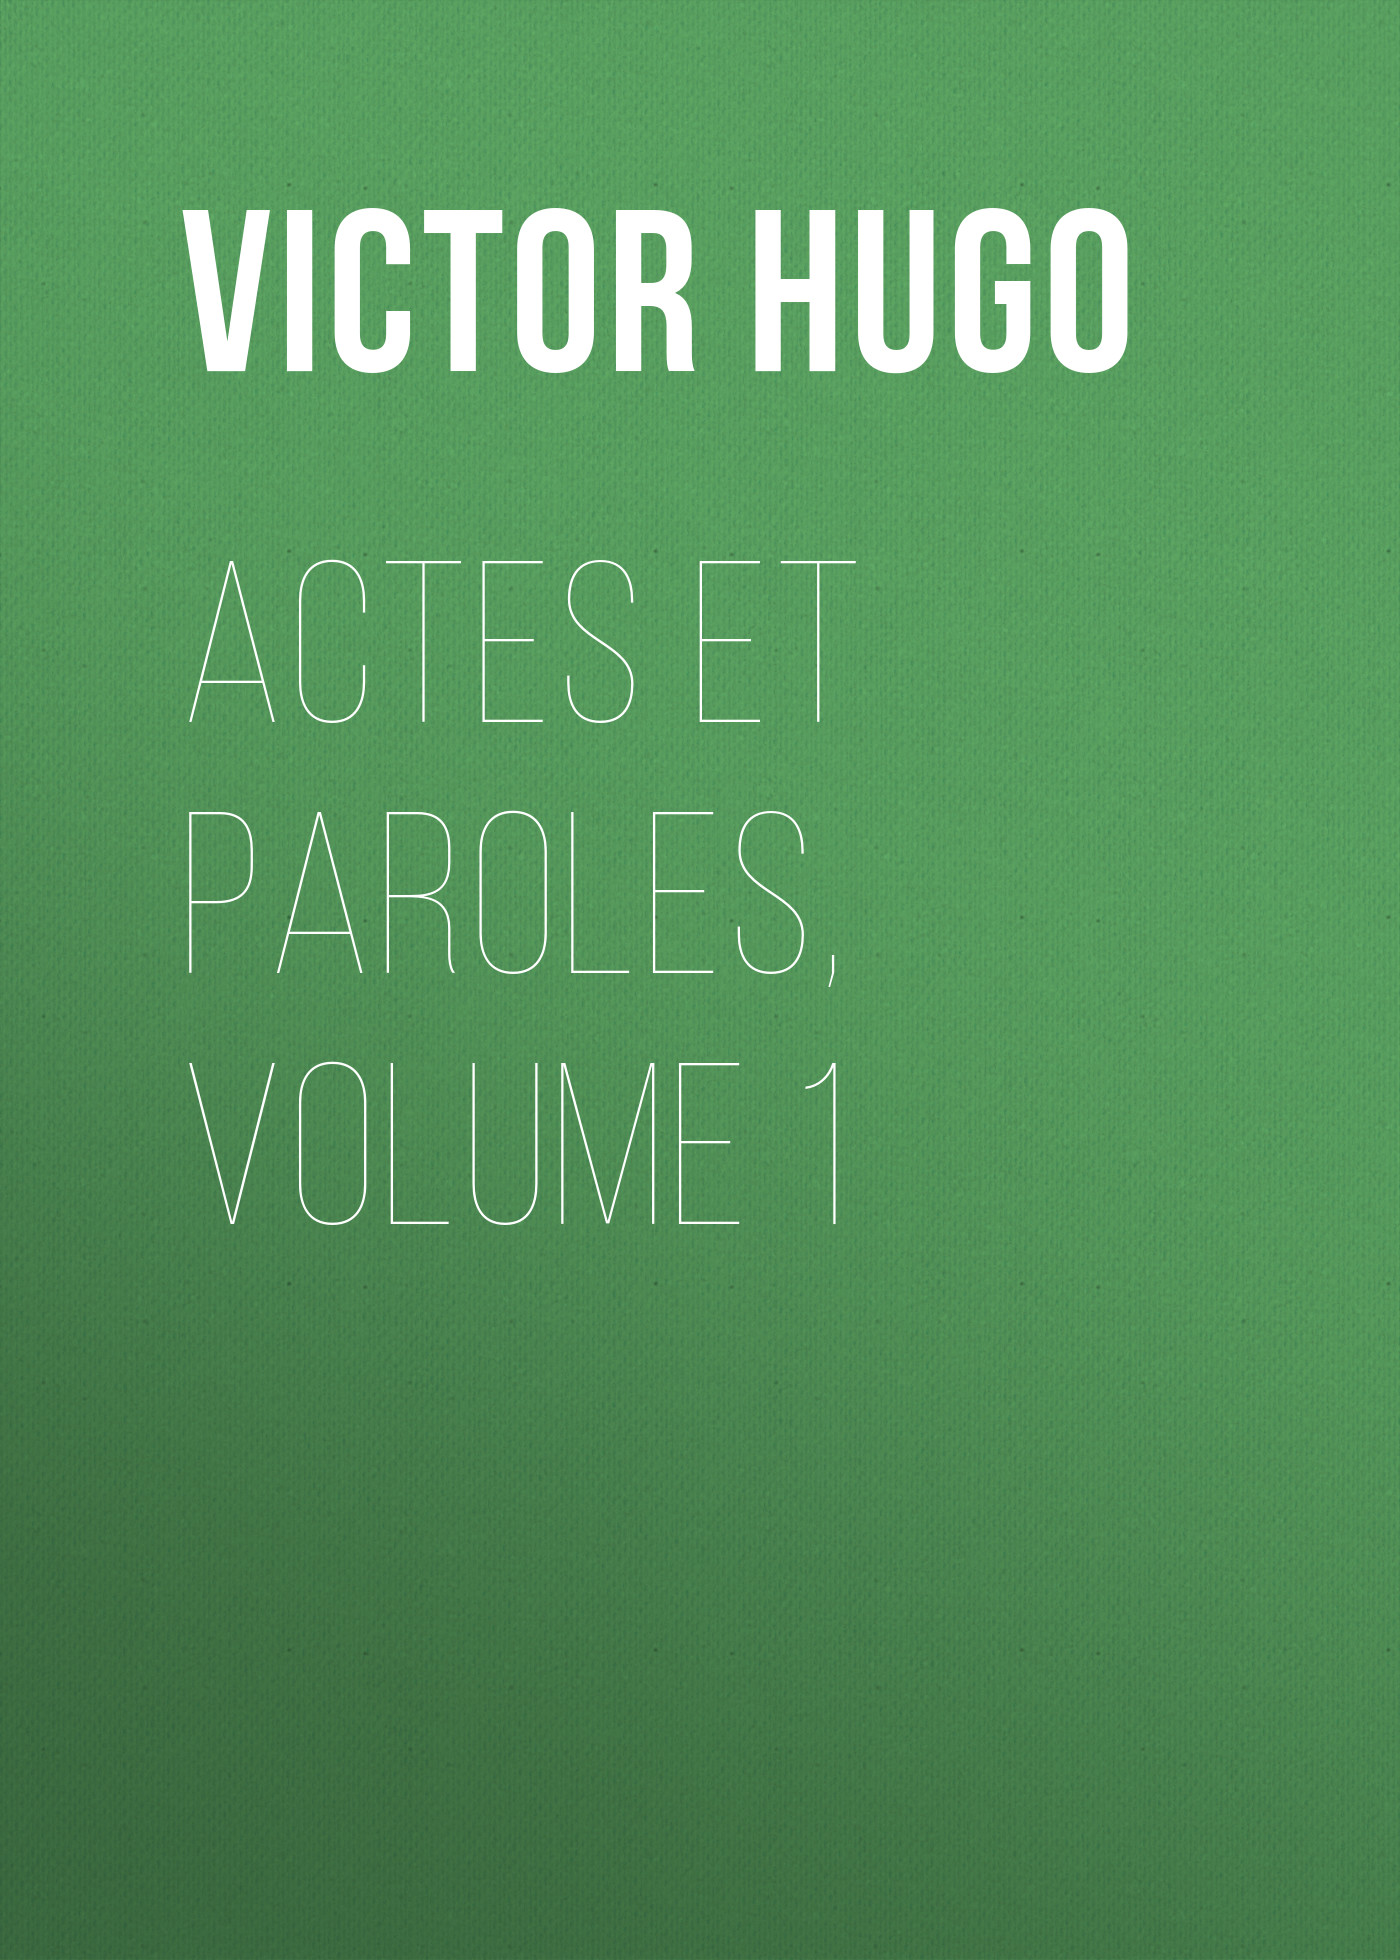 Виктор Мари Гюго Actes et Paroles, Volume 1 paroles